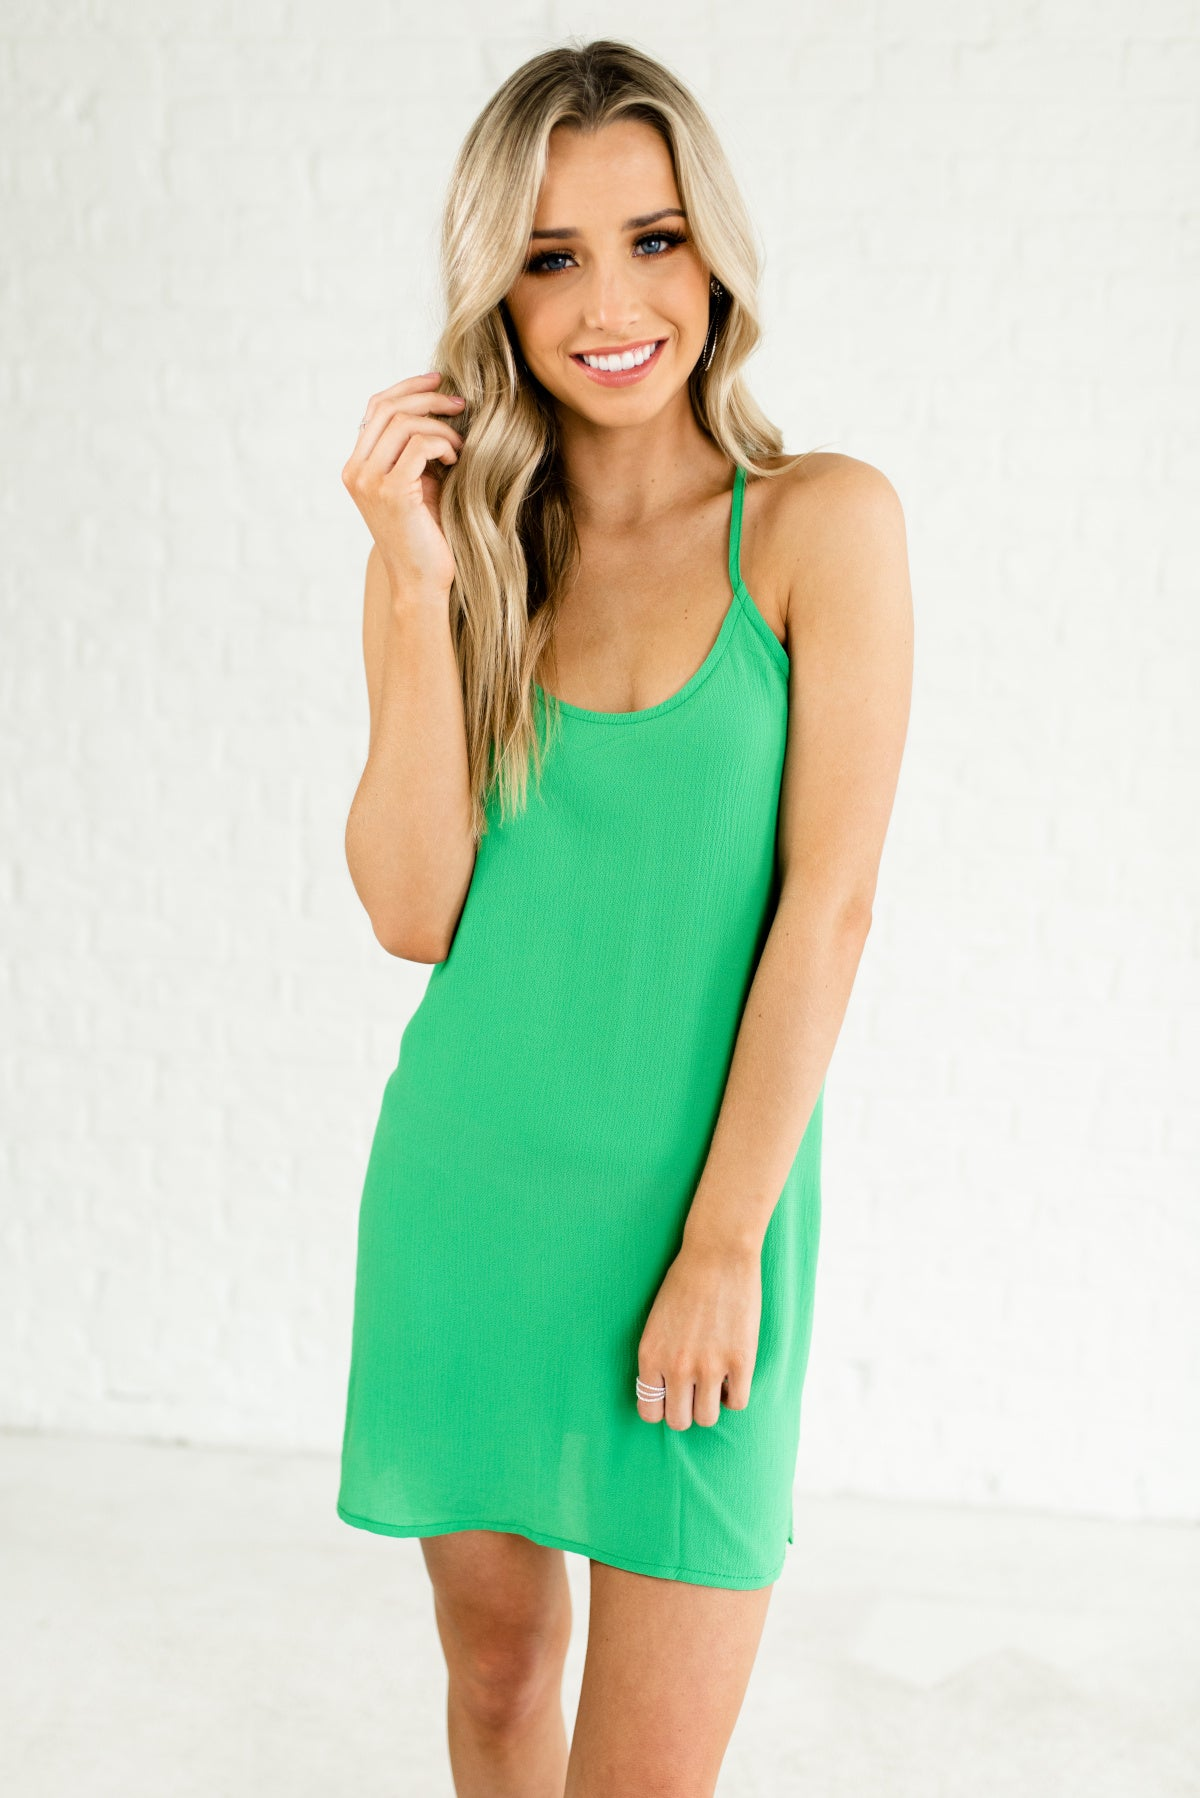 Green Boutique Sundresses for Women